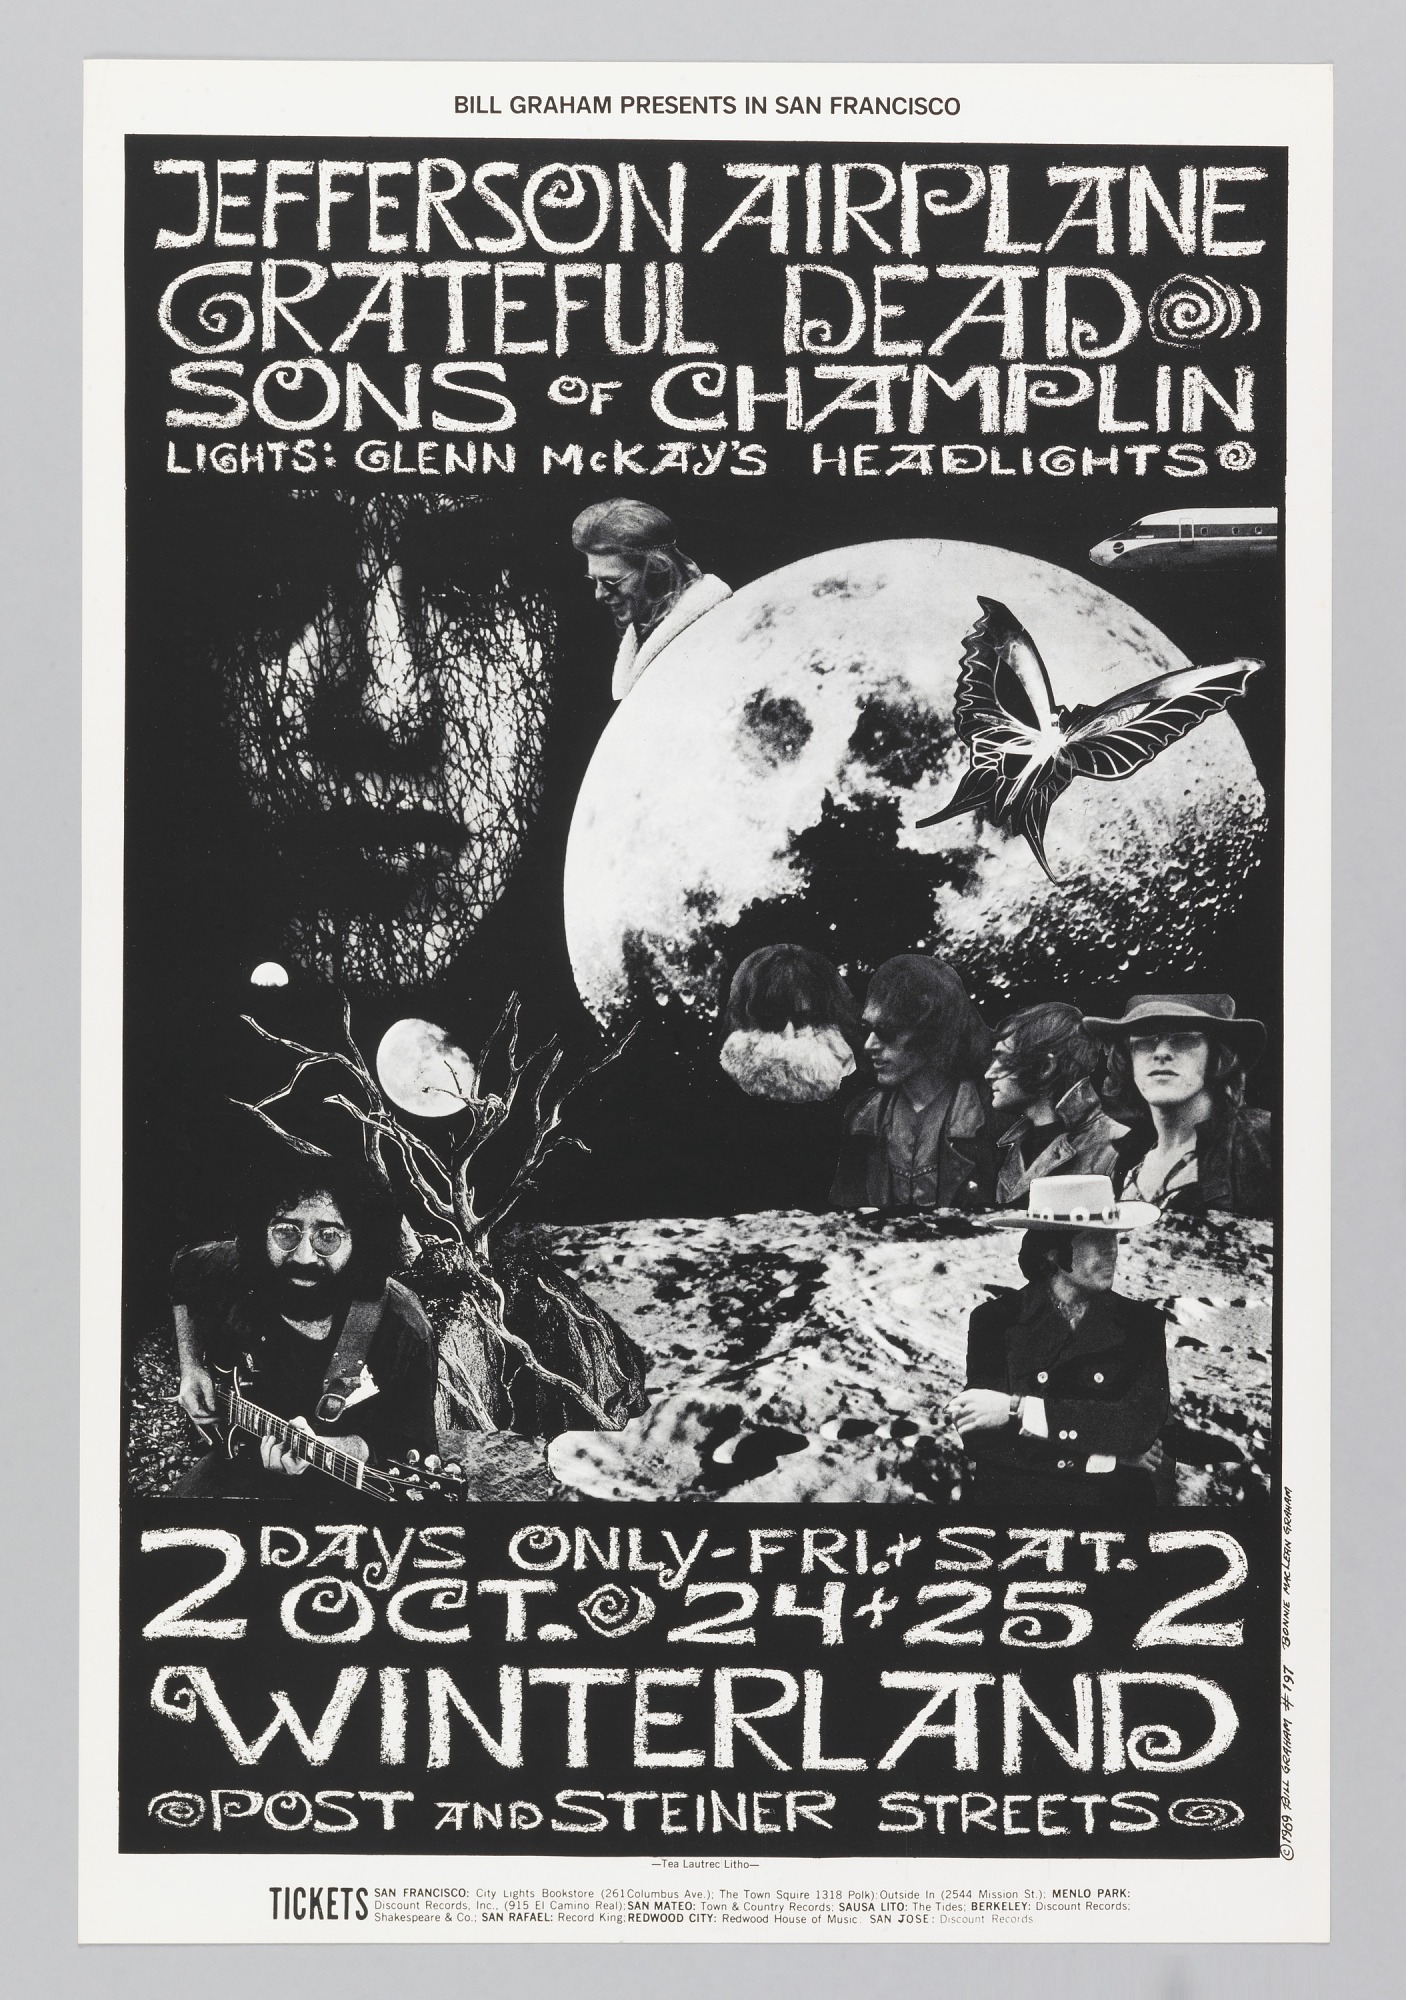 Image 1 for Jefferson Airplane / Grateful Dead / Sons of Champlin